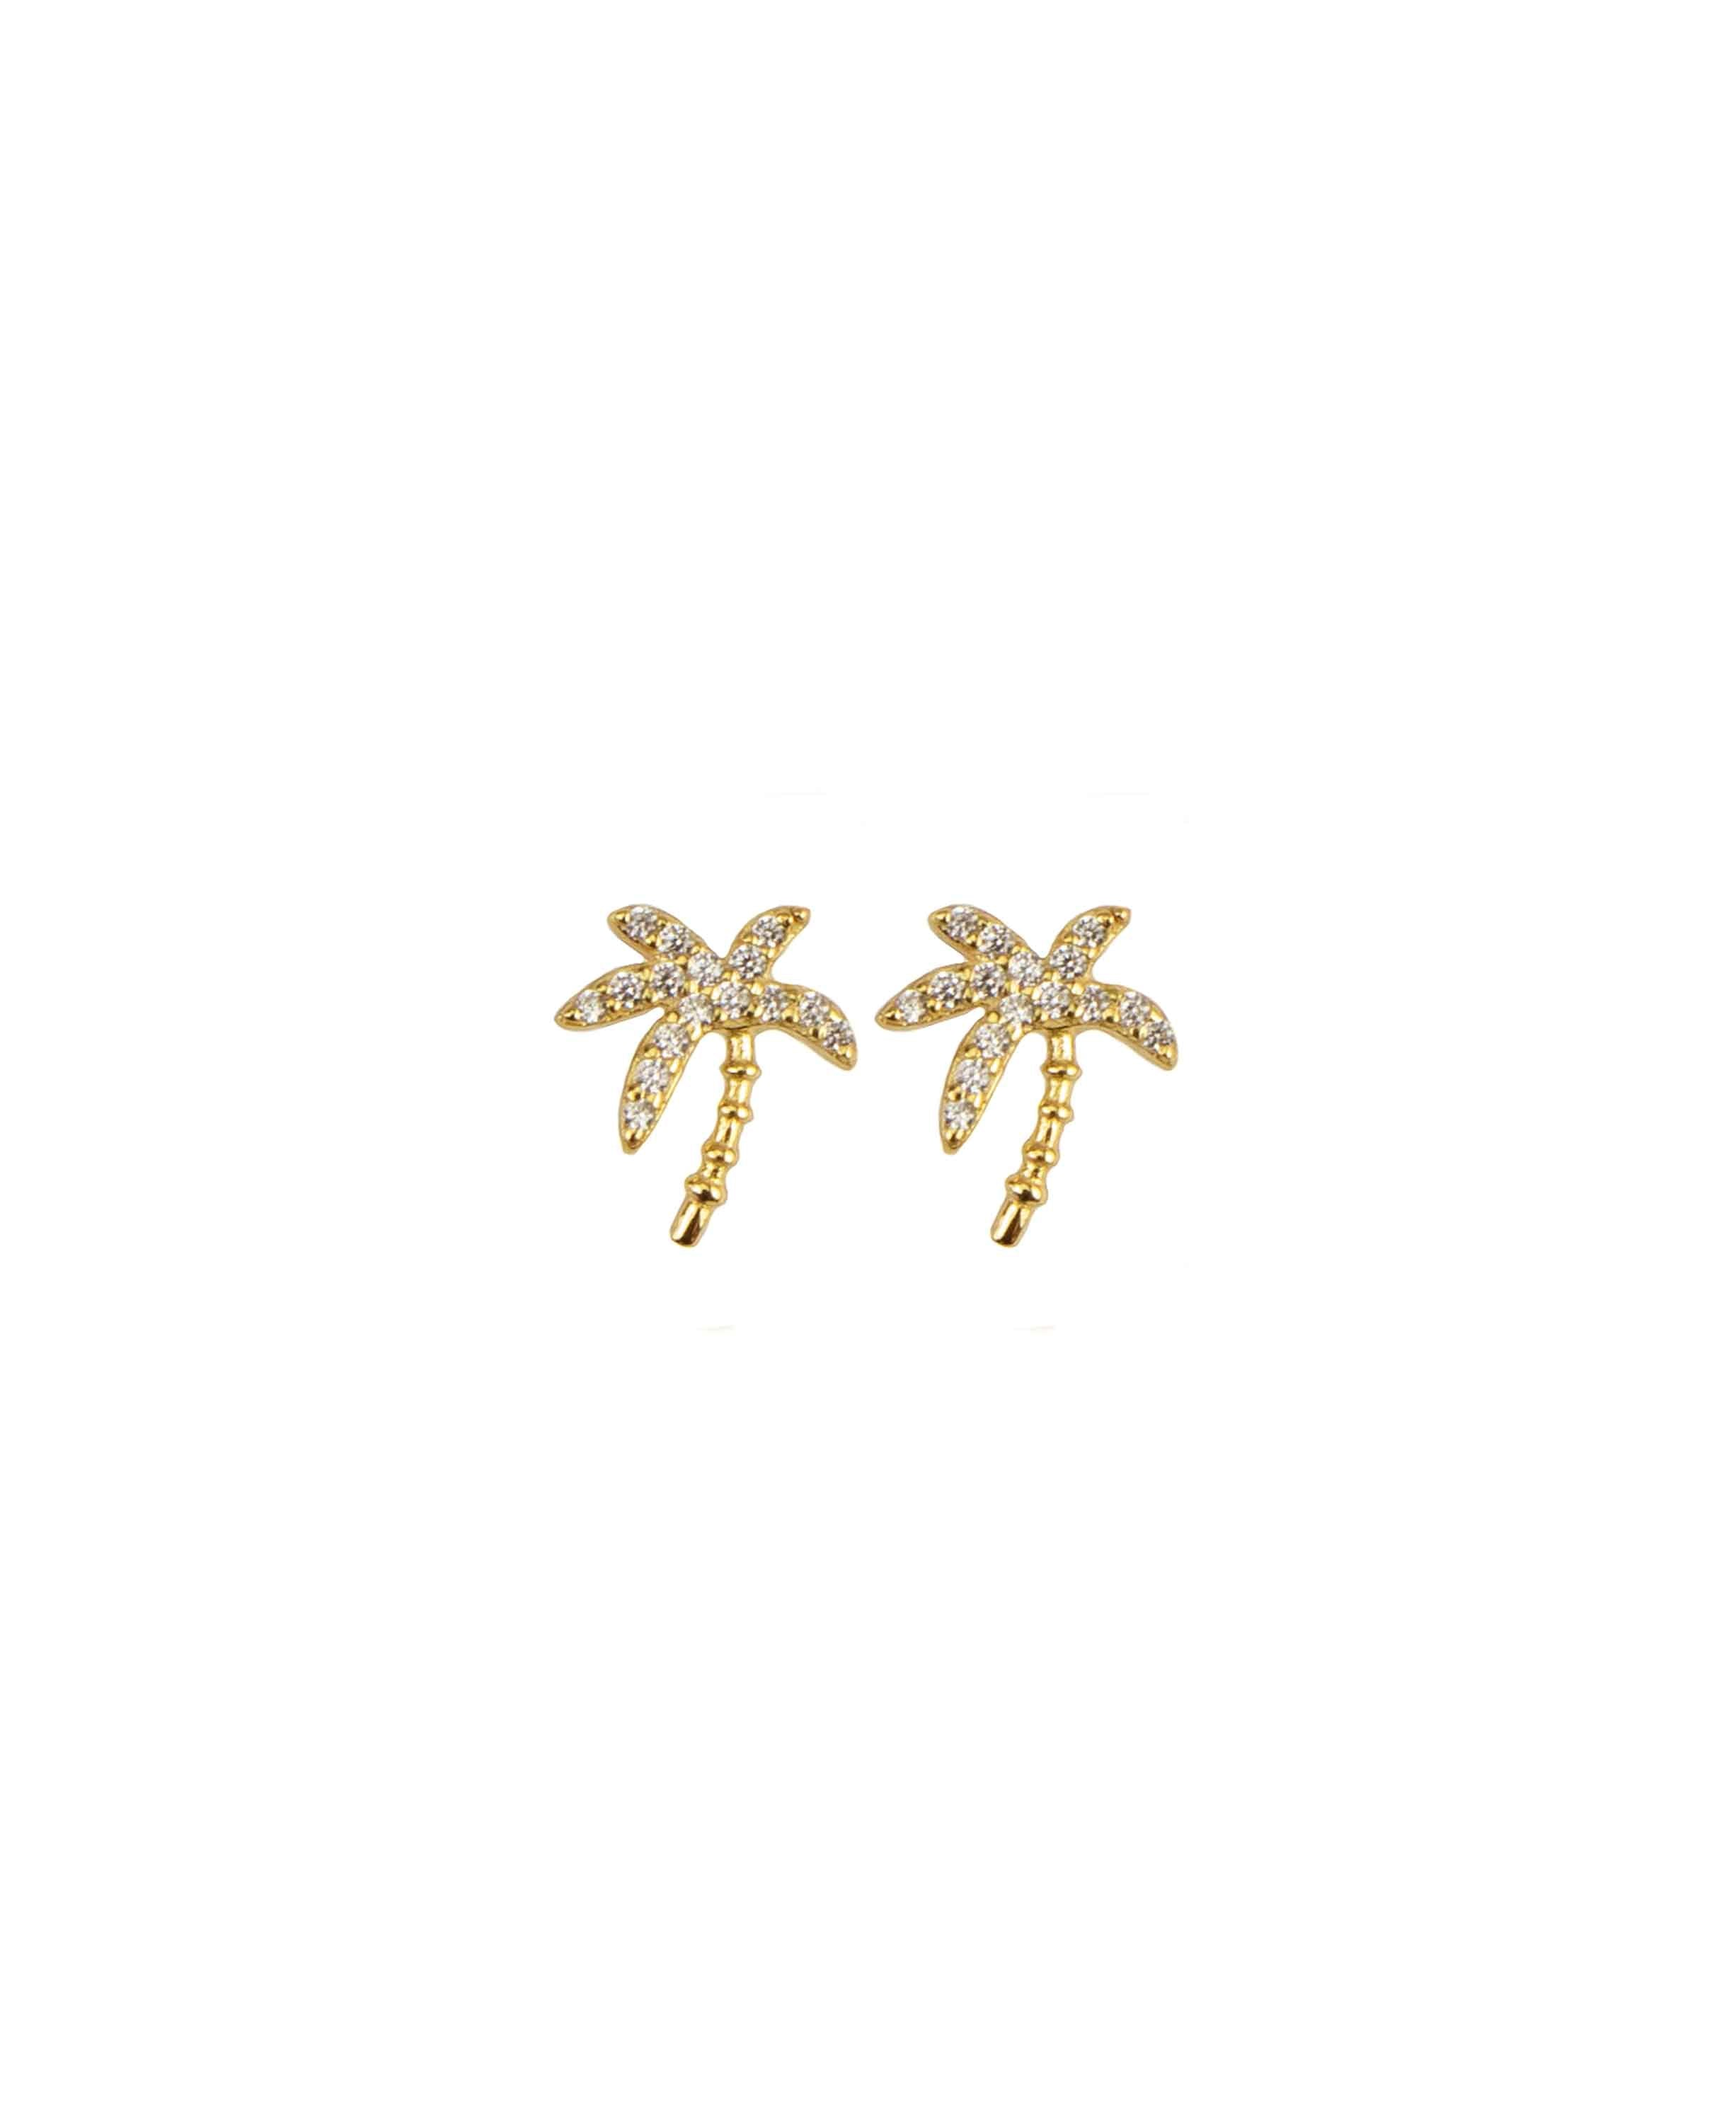 Hultquist Copenhagen, Palm Earrings